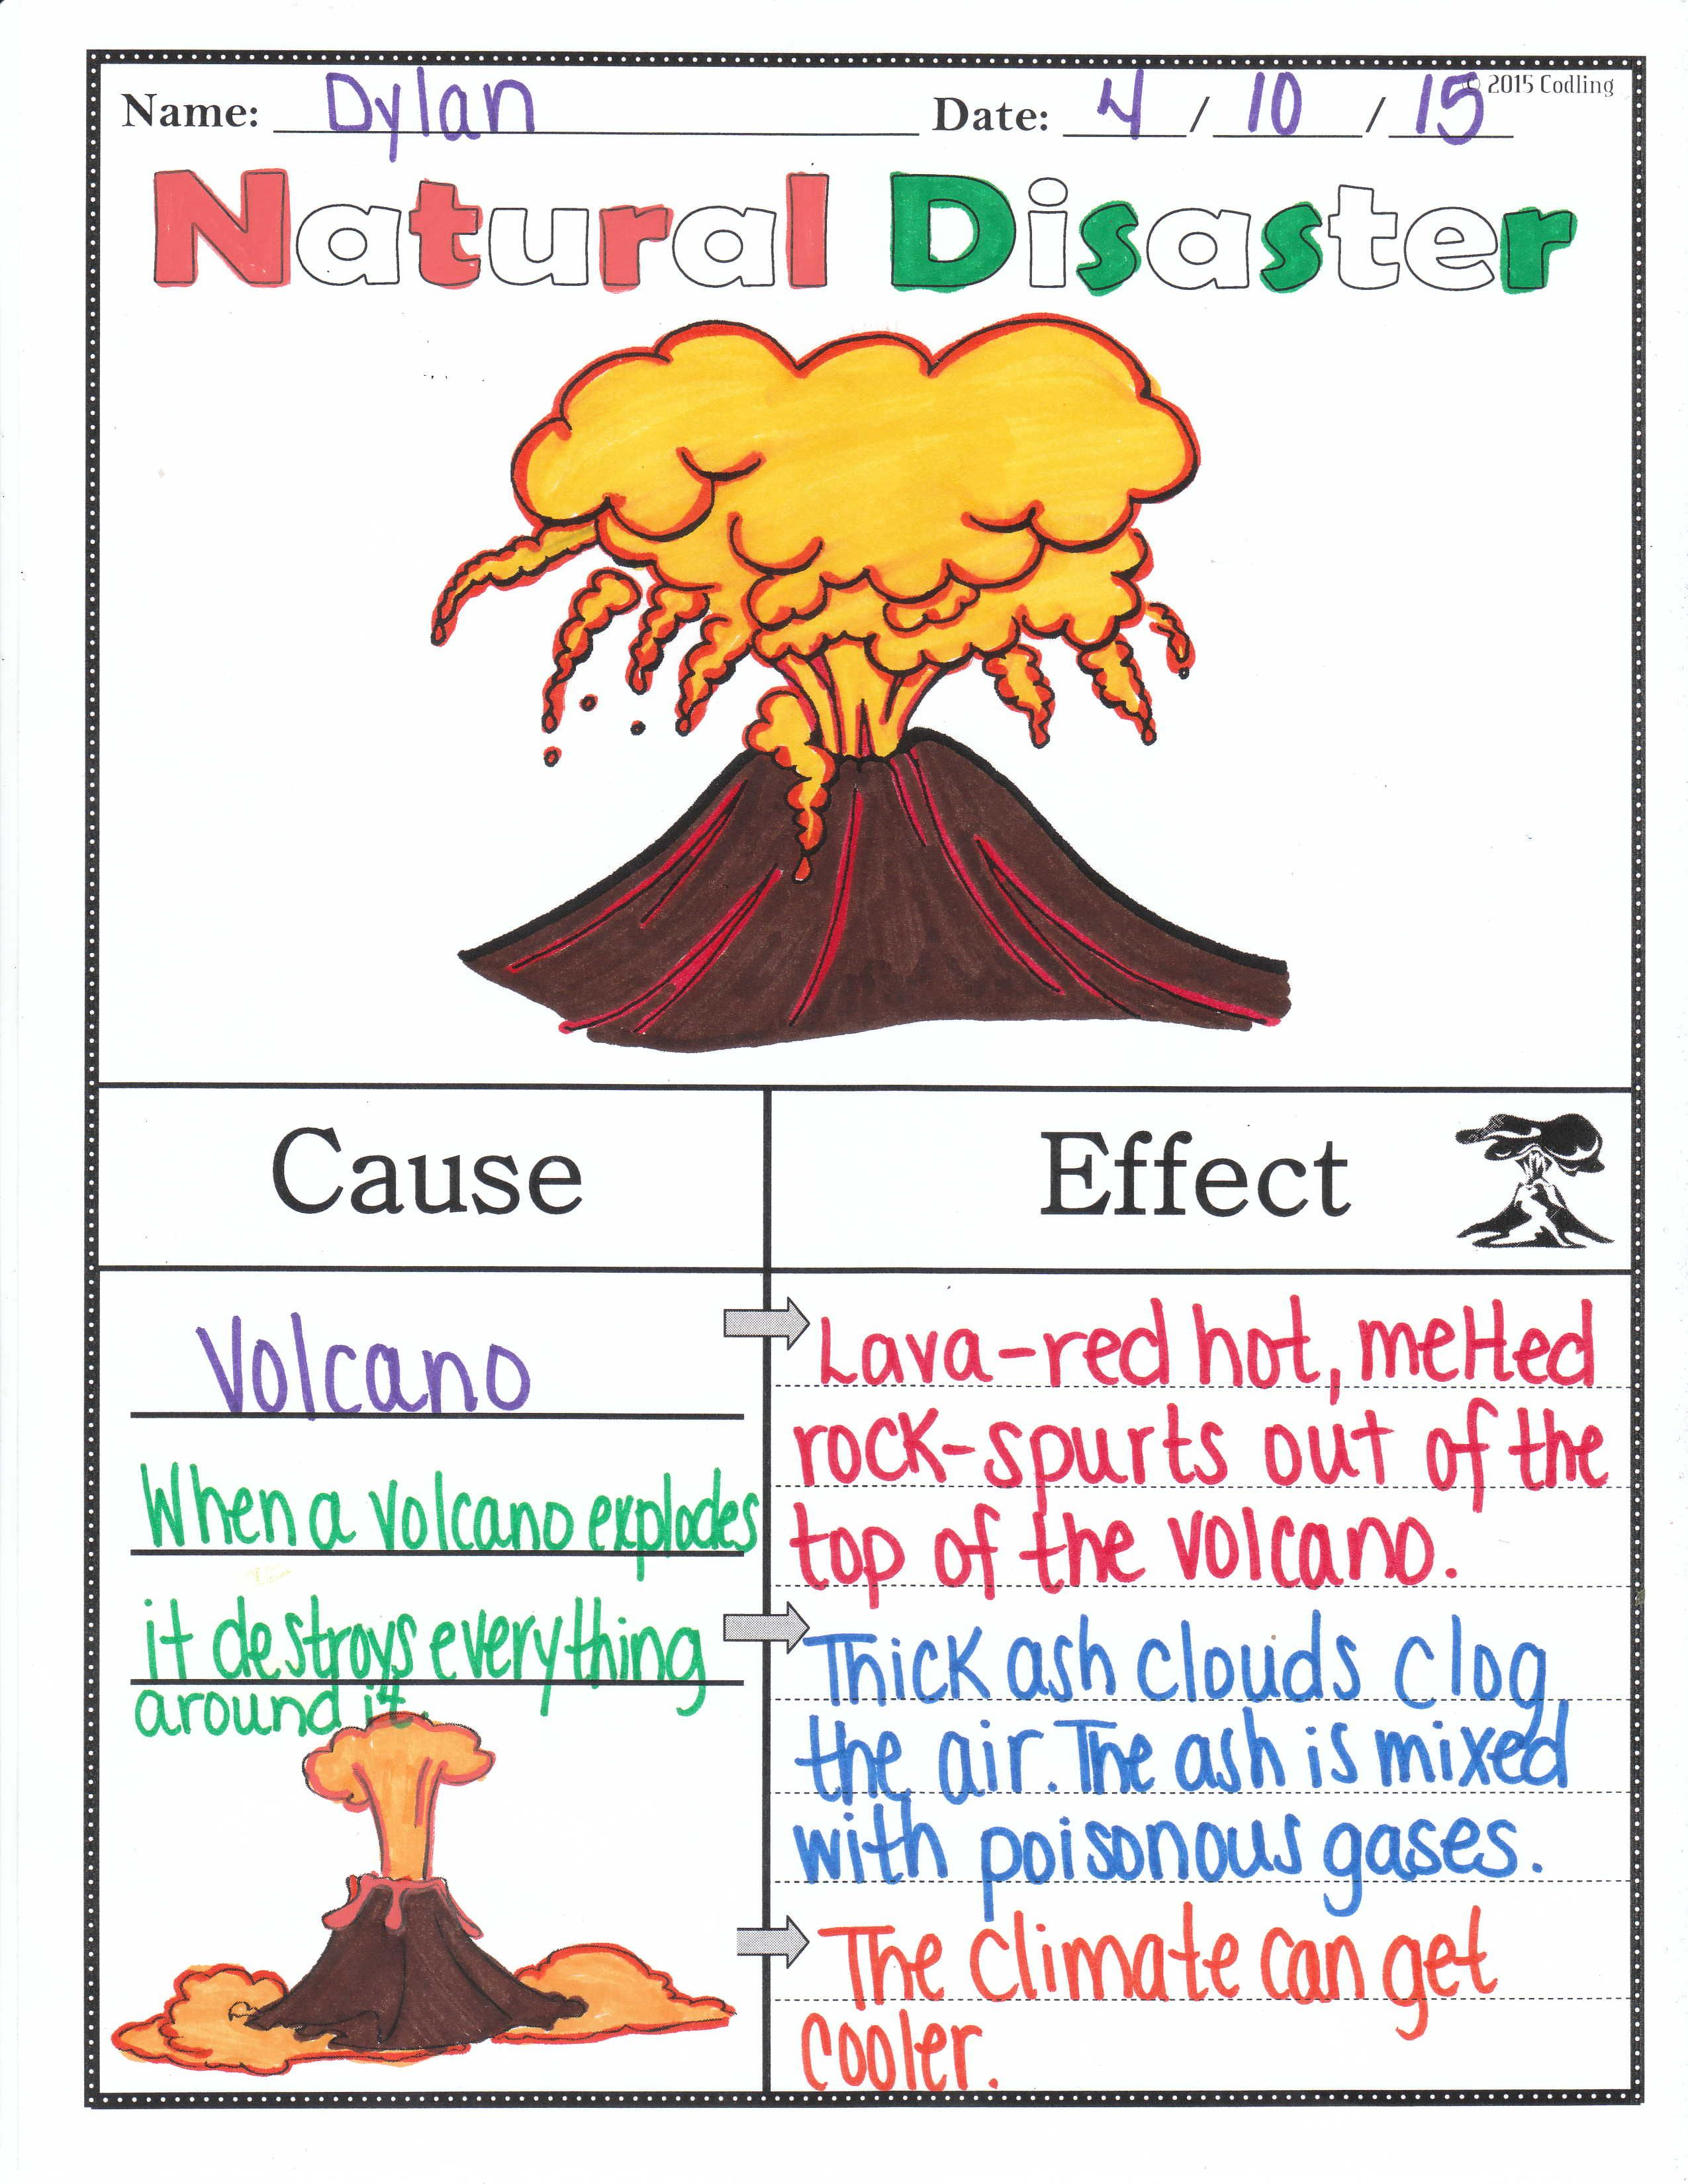 Natural Disasters Worksheets For 2nd Grade   Printable Worksheets and  Activities for Teachers [ 3300 x 2550 Pixel ]